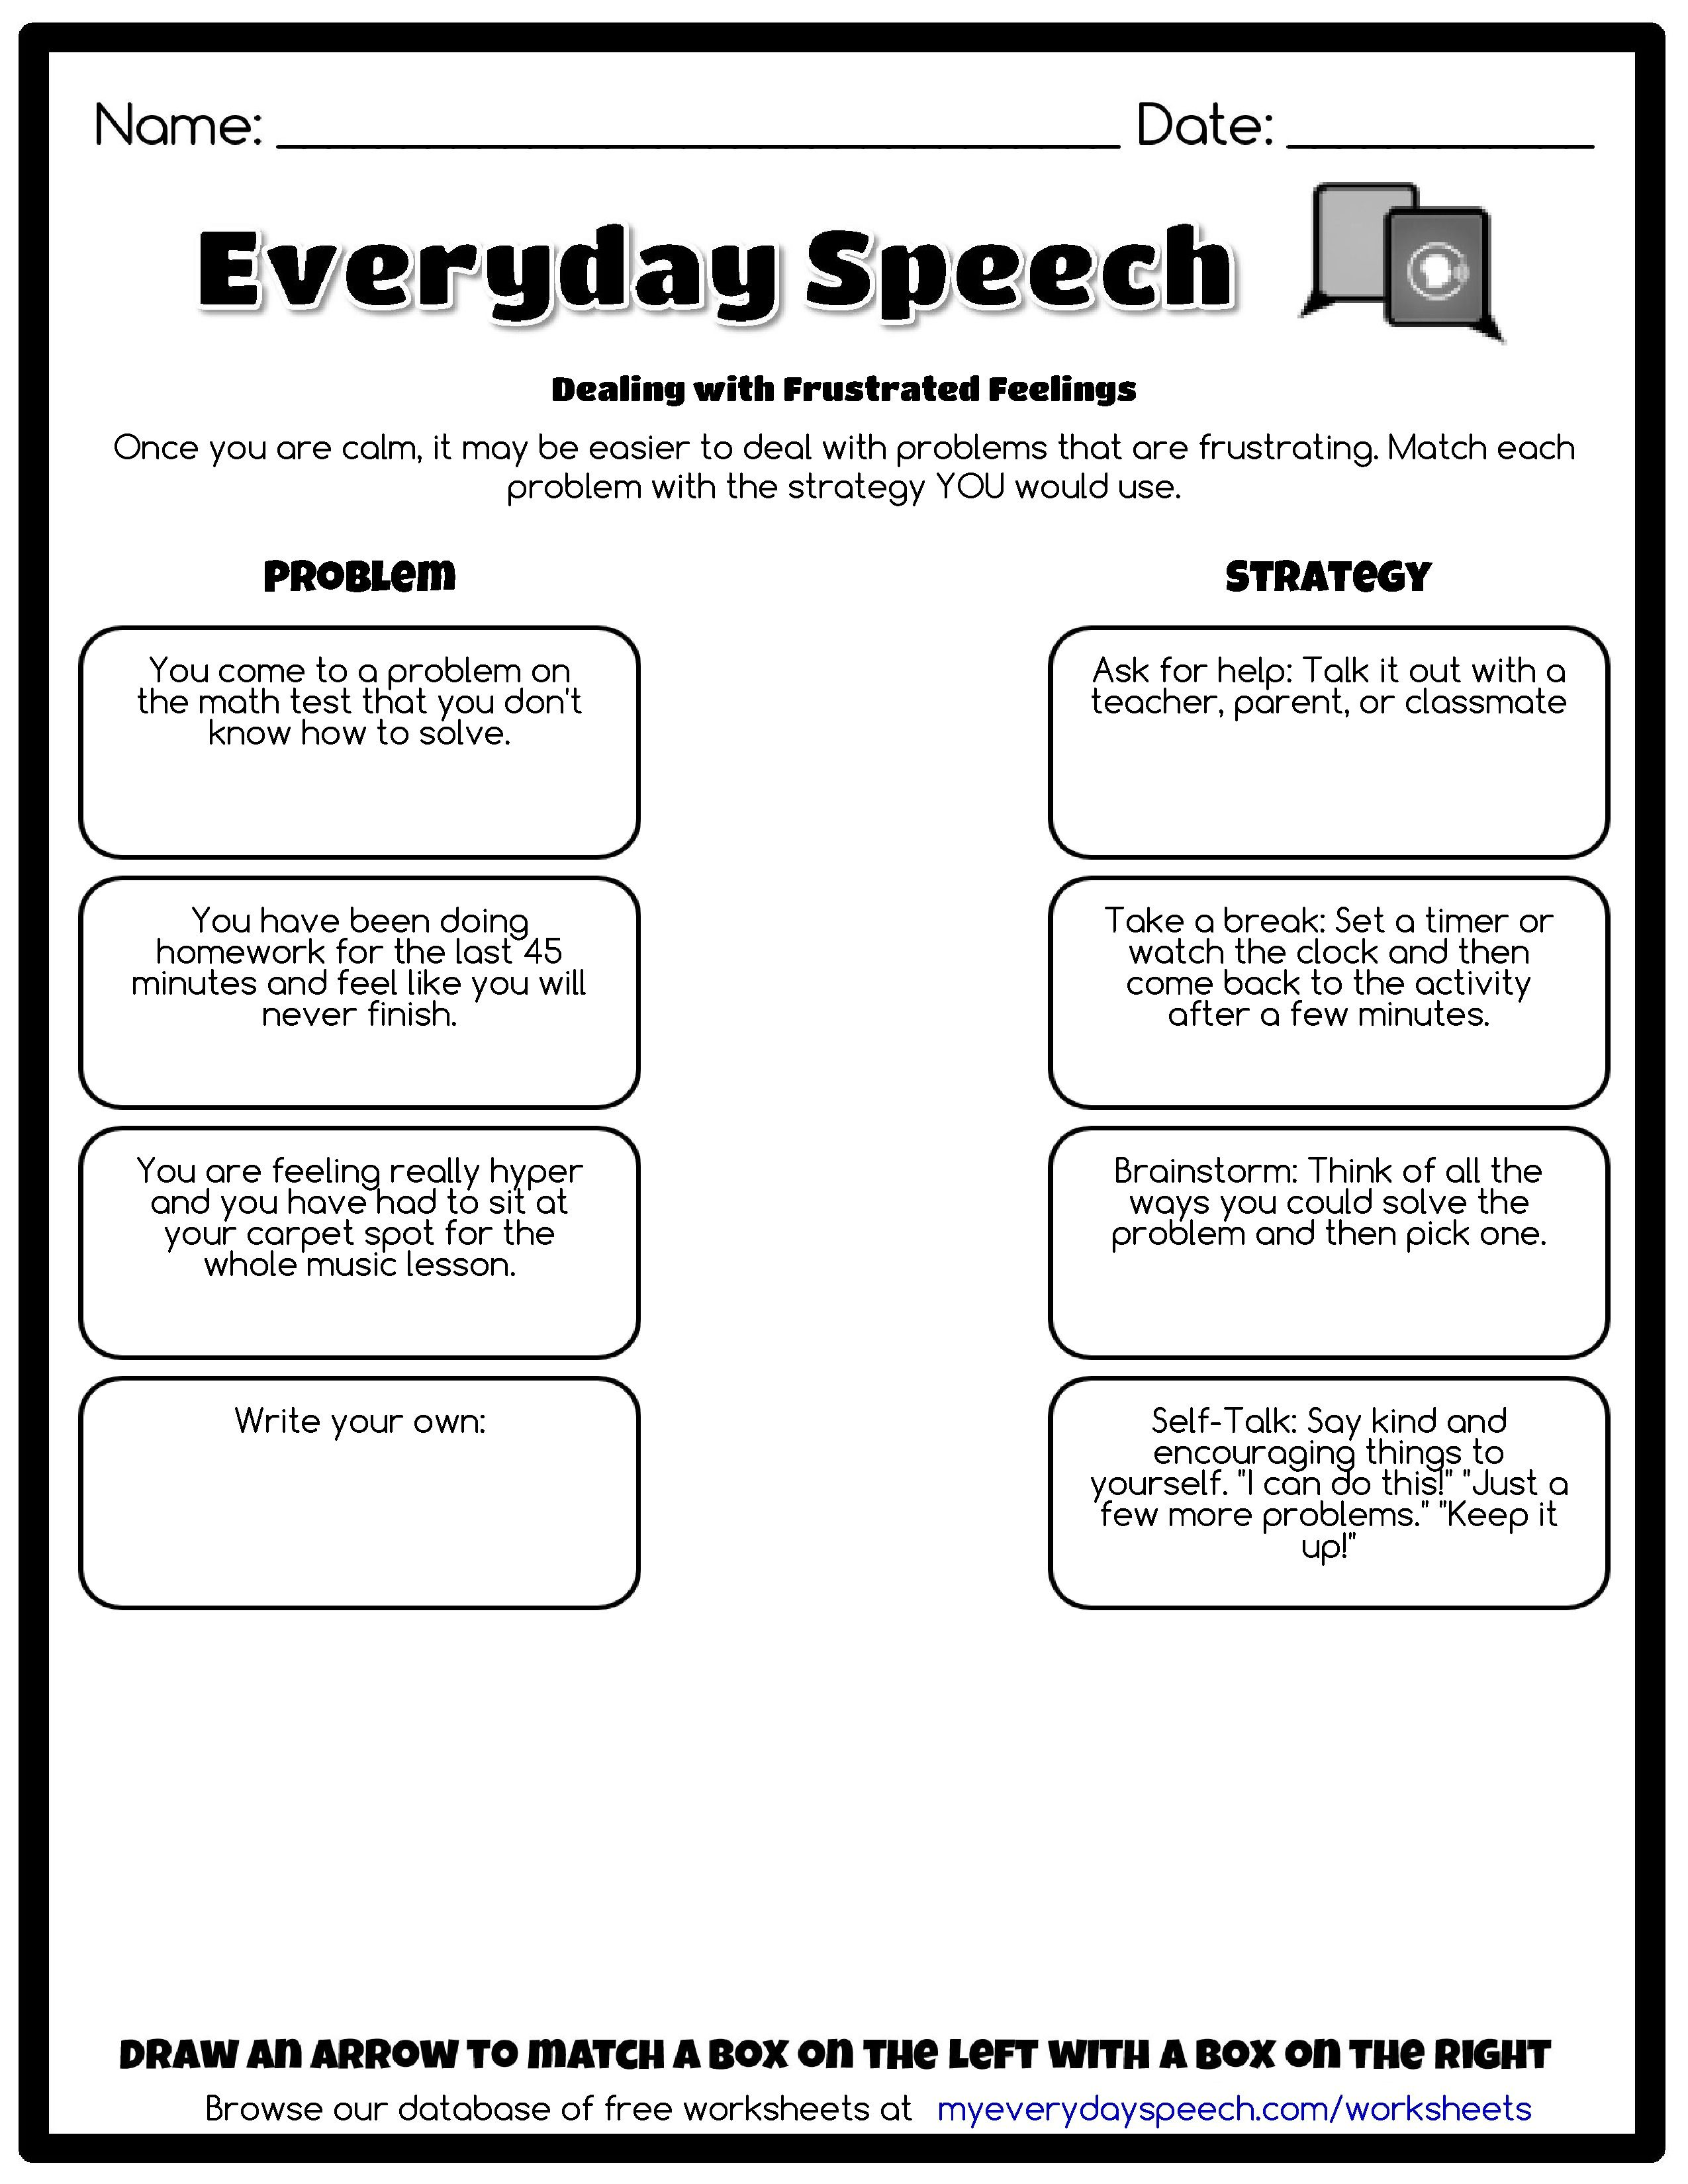 Worksheets Social Skills Problem Solving Worksheets check out the worksheet i just made using everyday speechs creator dealing with frustrated